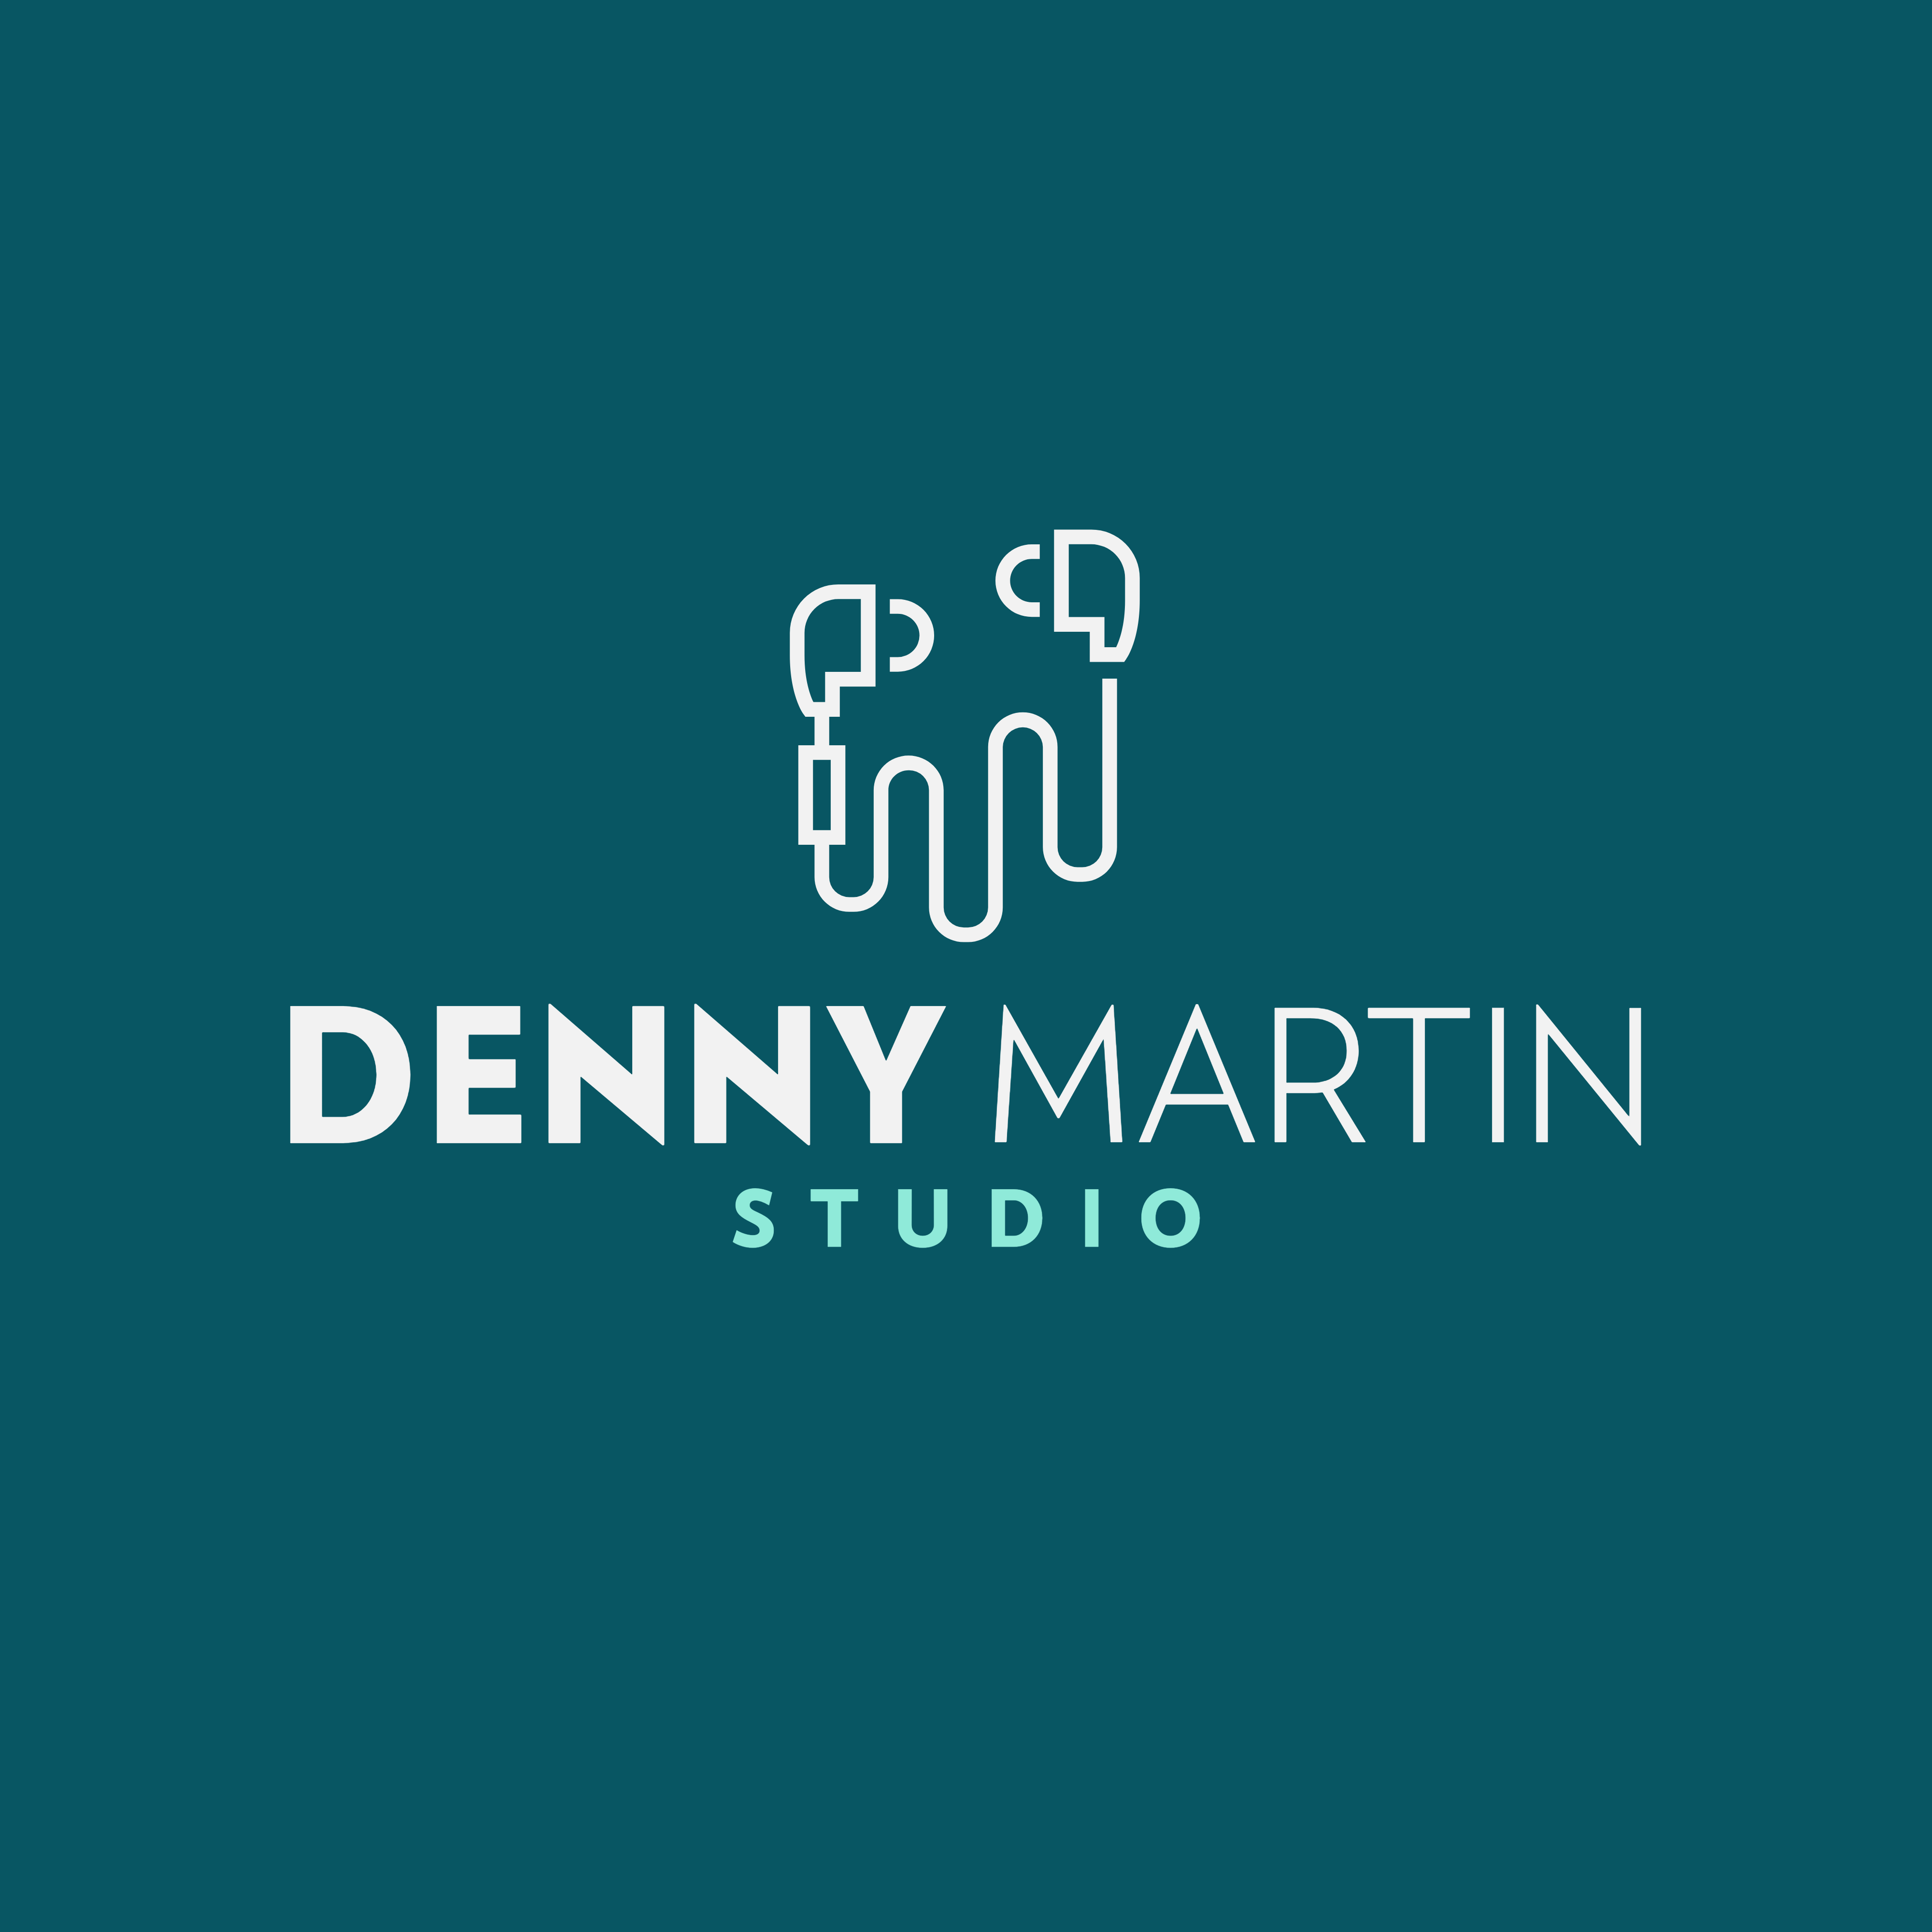 Denny Martin Studio Logo by Dalex Design our work Our Work logo creator for a recording studio featuring a headphones graphic 408b el1 1024x1024